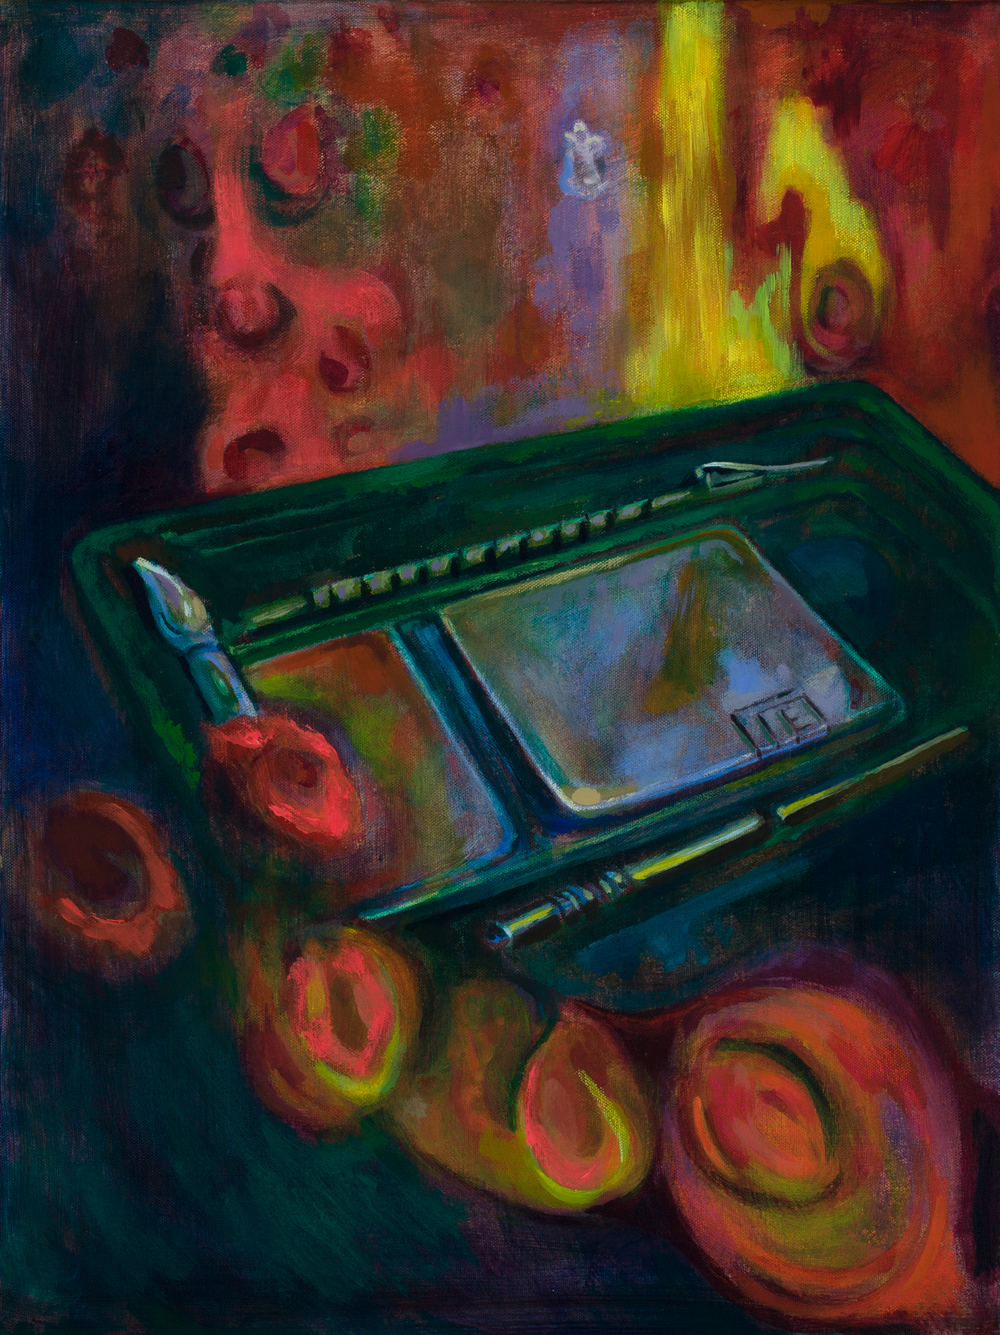 My Father's Blood Draw Kit . Betsy Andersen. Acrylic on canvas. Fall 2015  Intima.